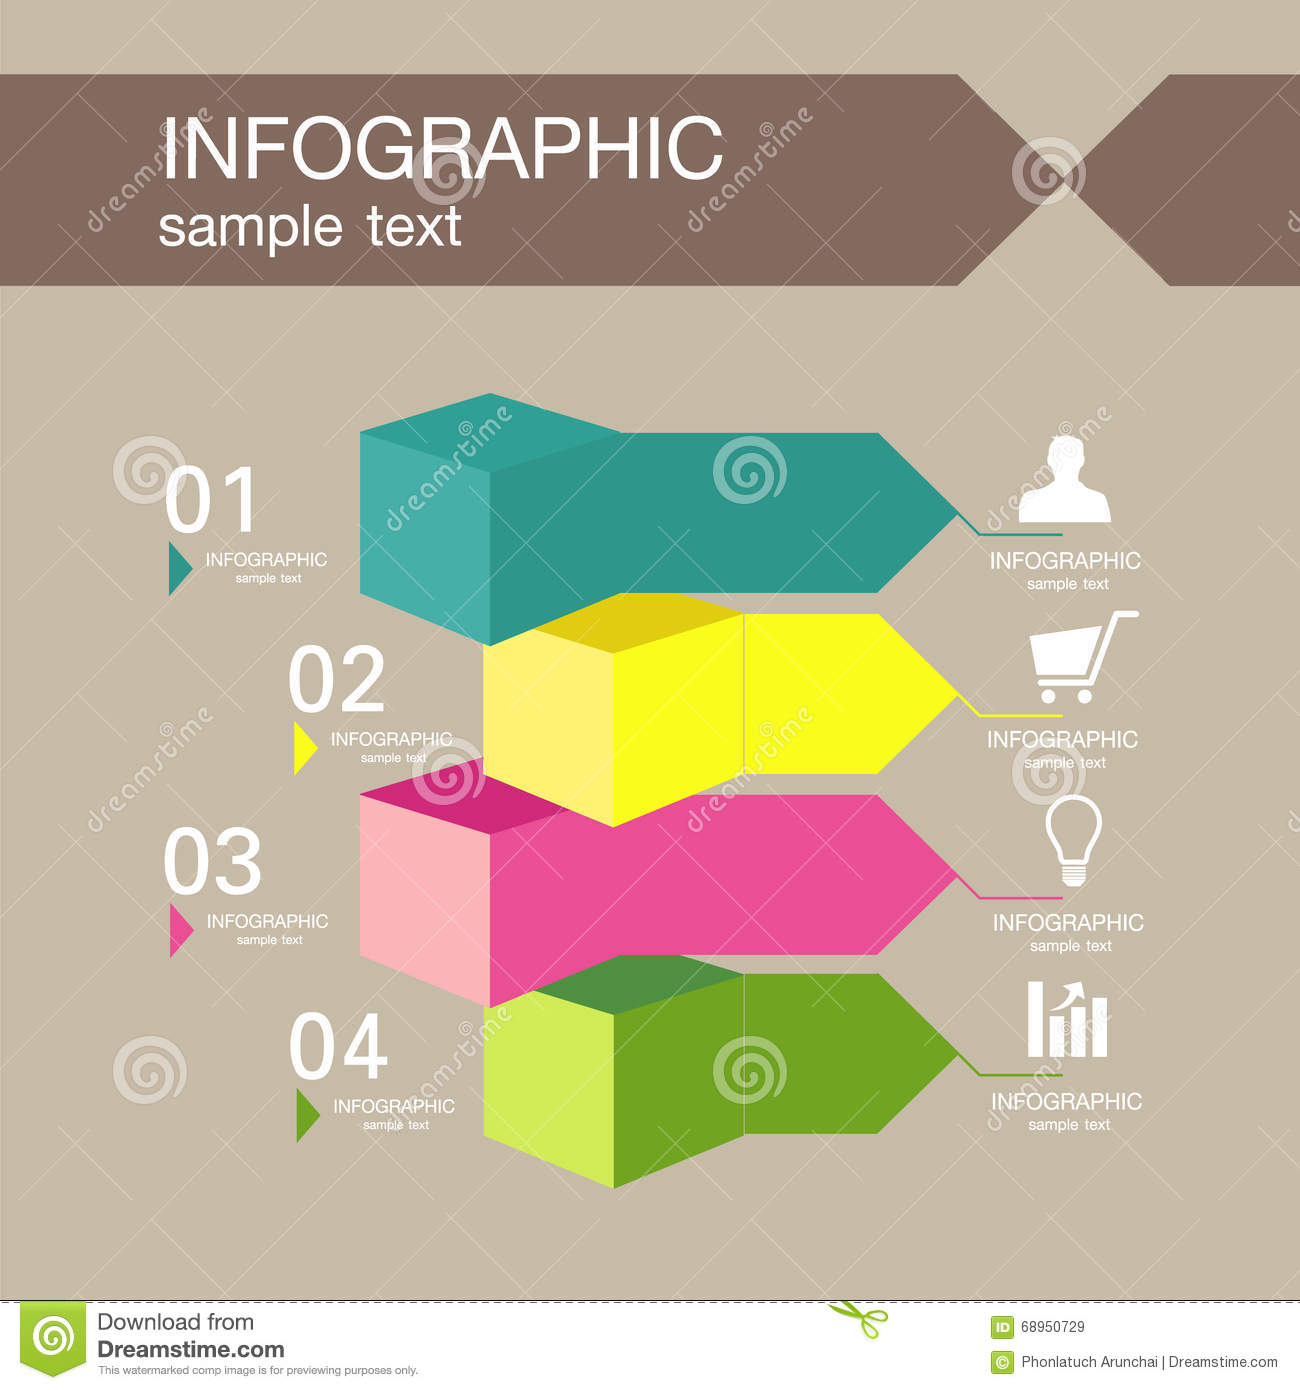 Infographic Design Template With Graphic Elements Set Illustration